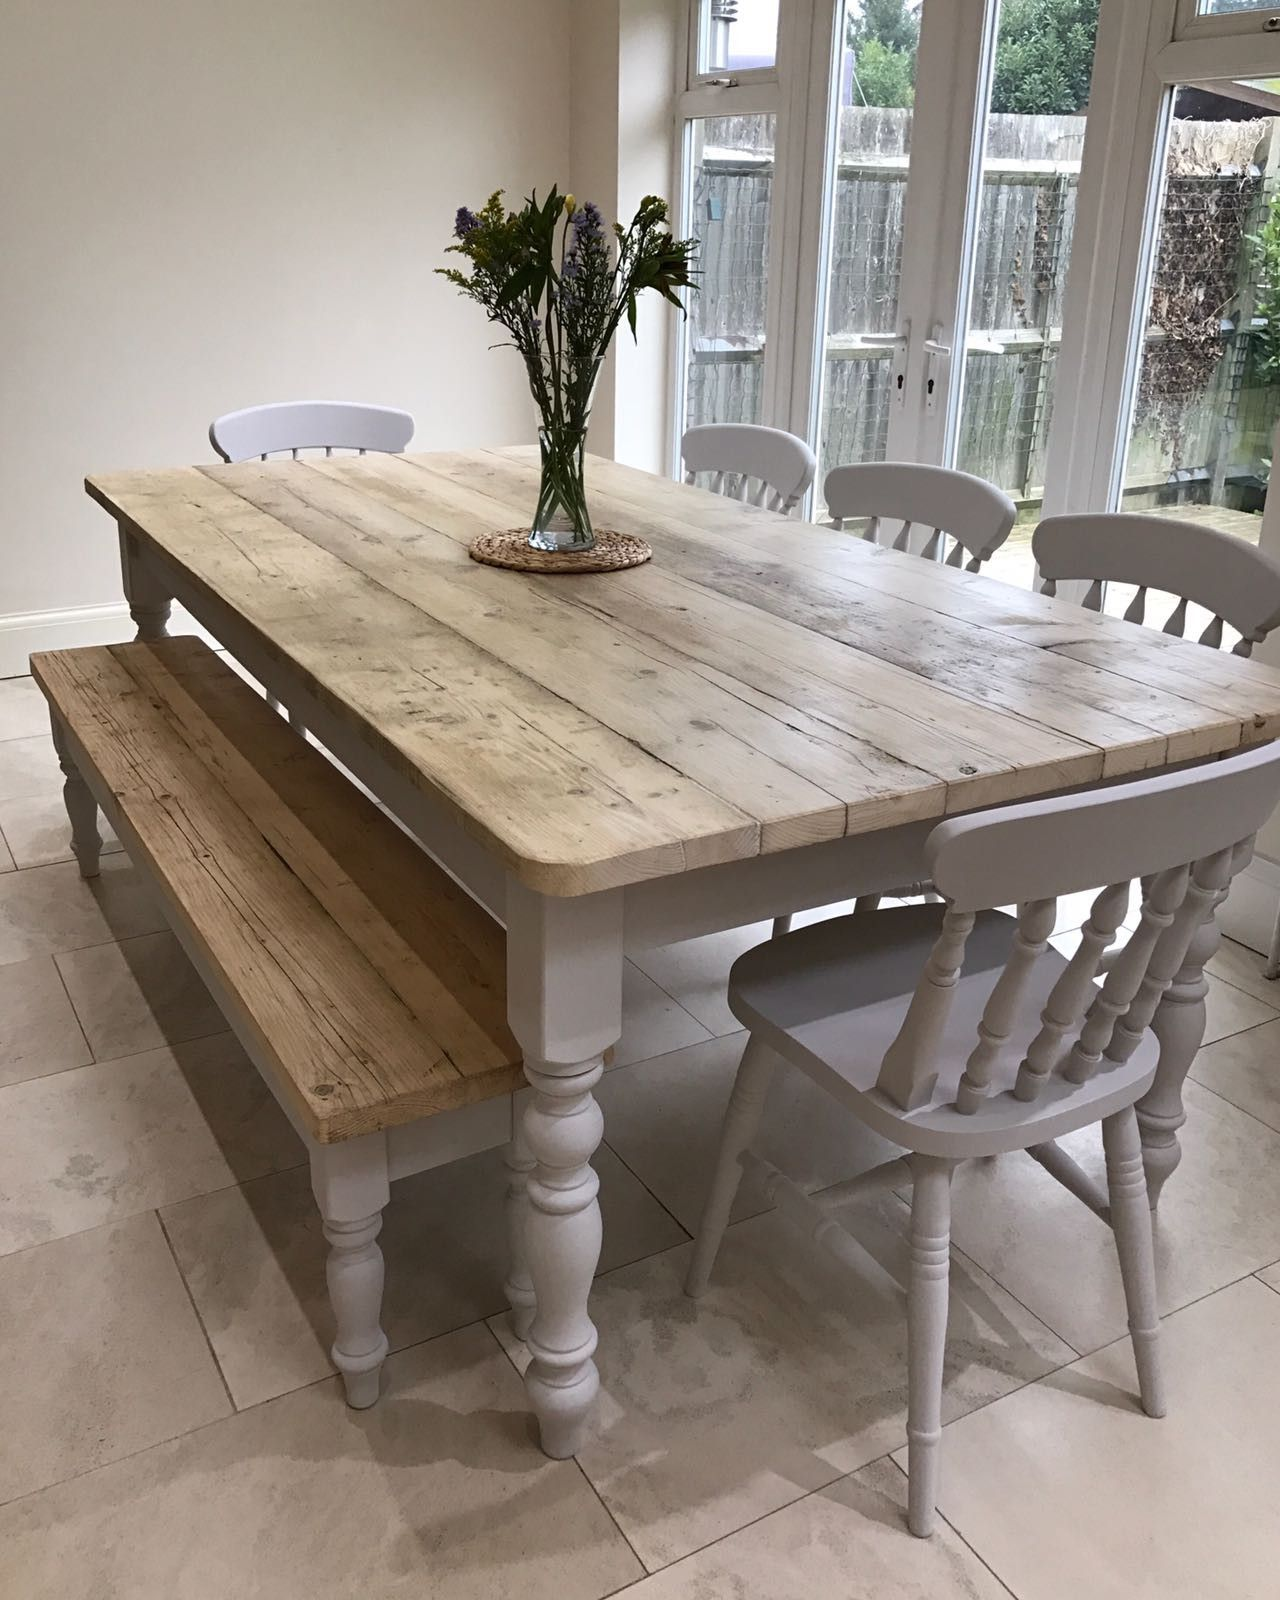 Country house furniture, lime-washed country tables and benches made to measure - Landleben OFCHLWU